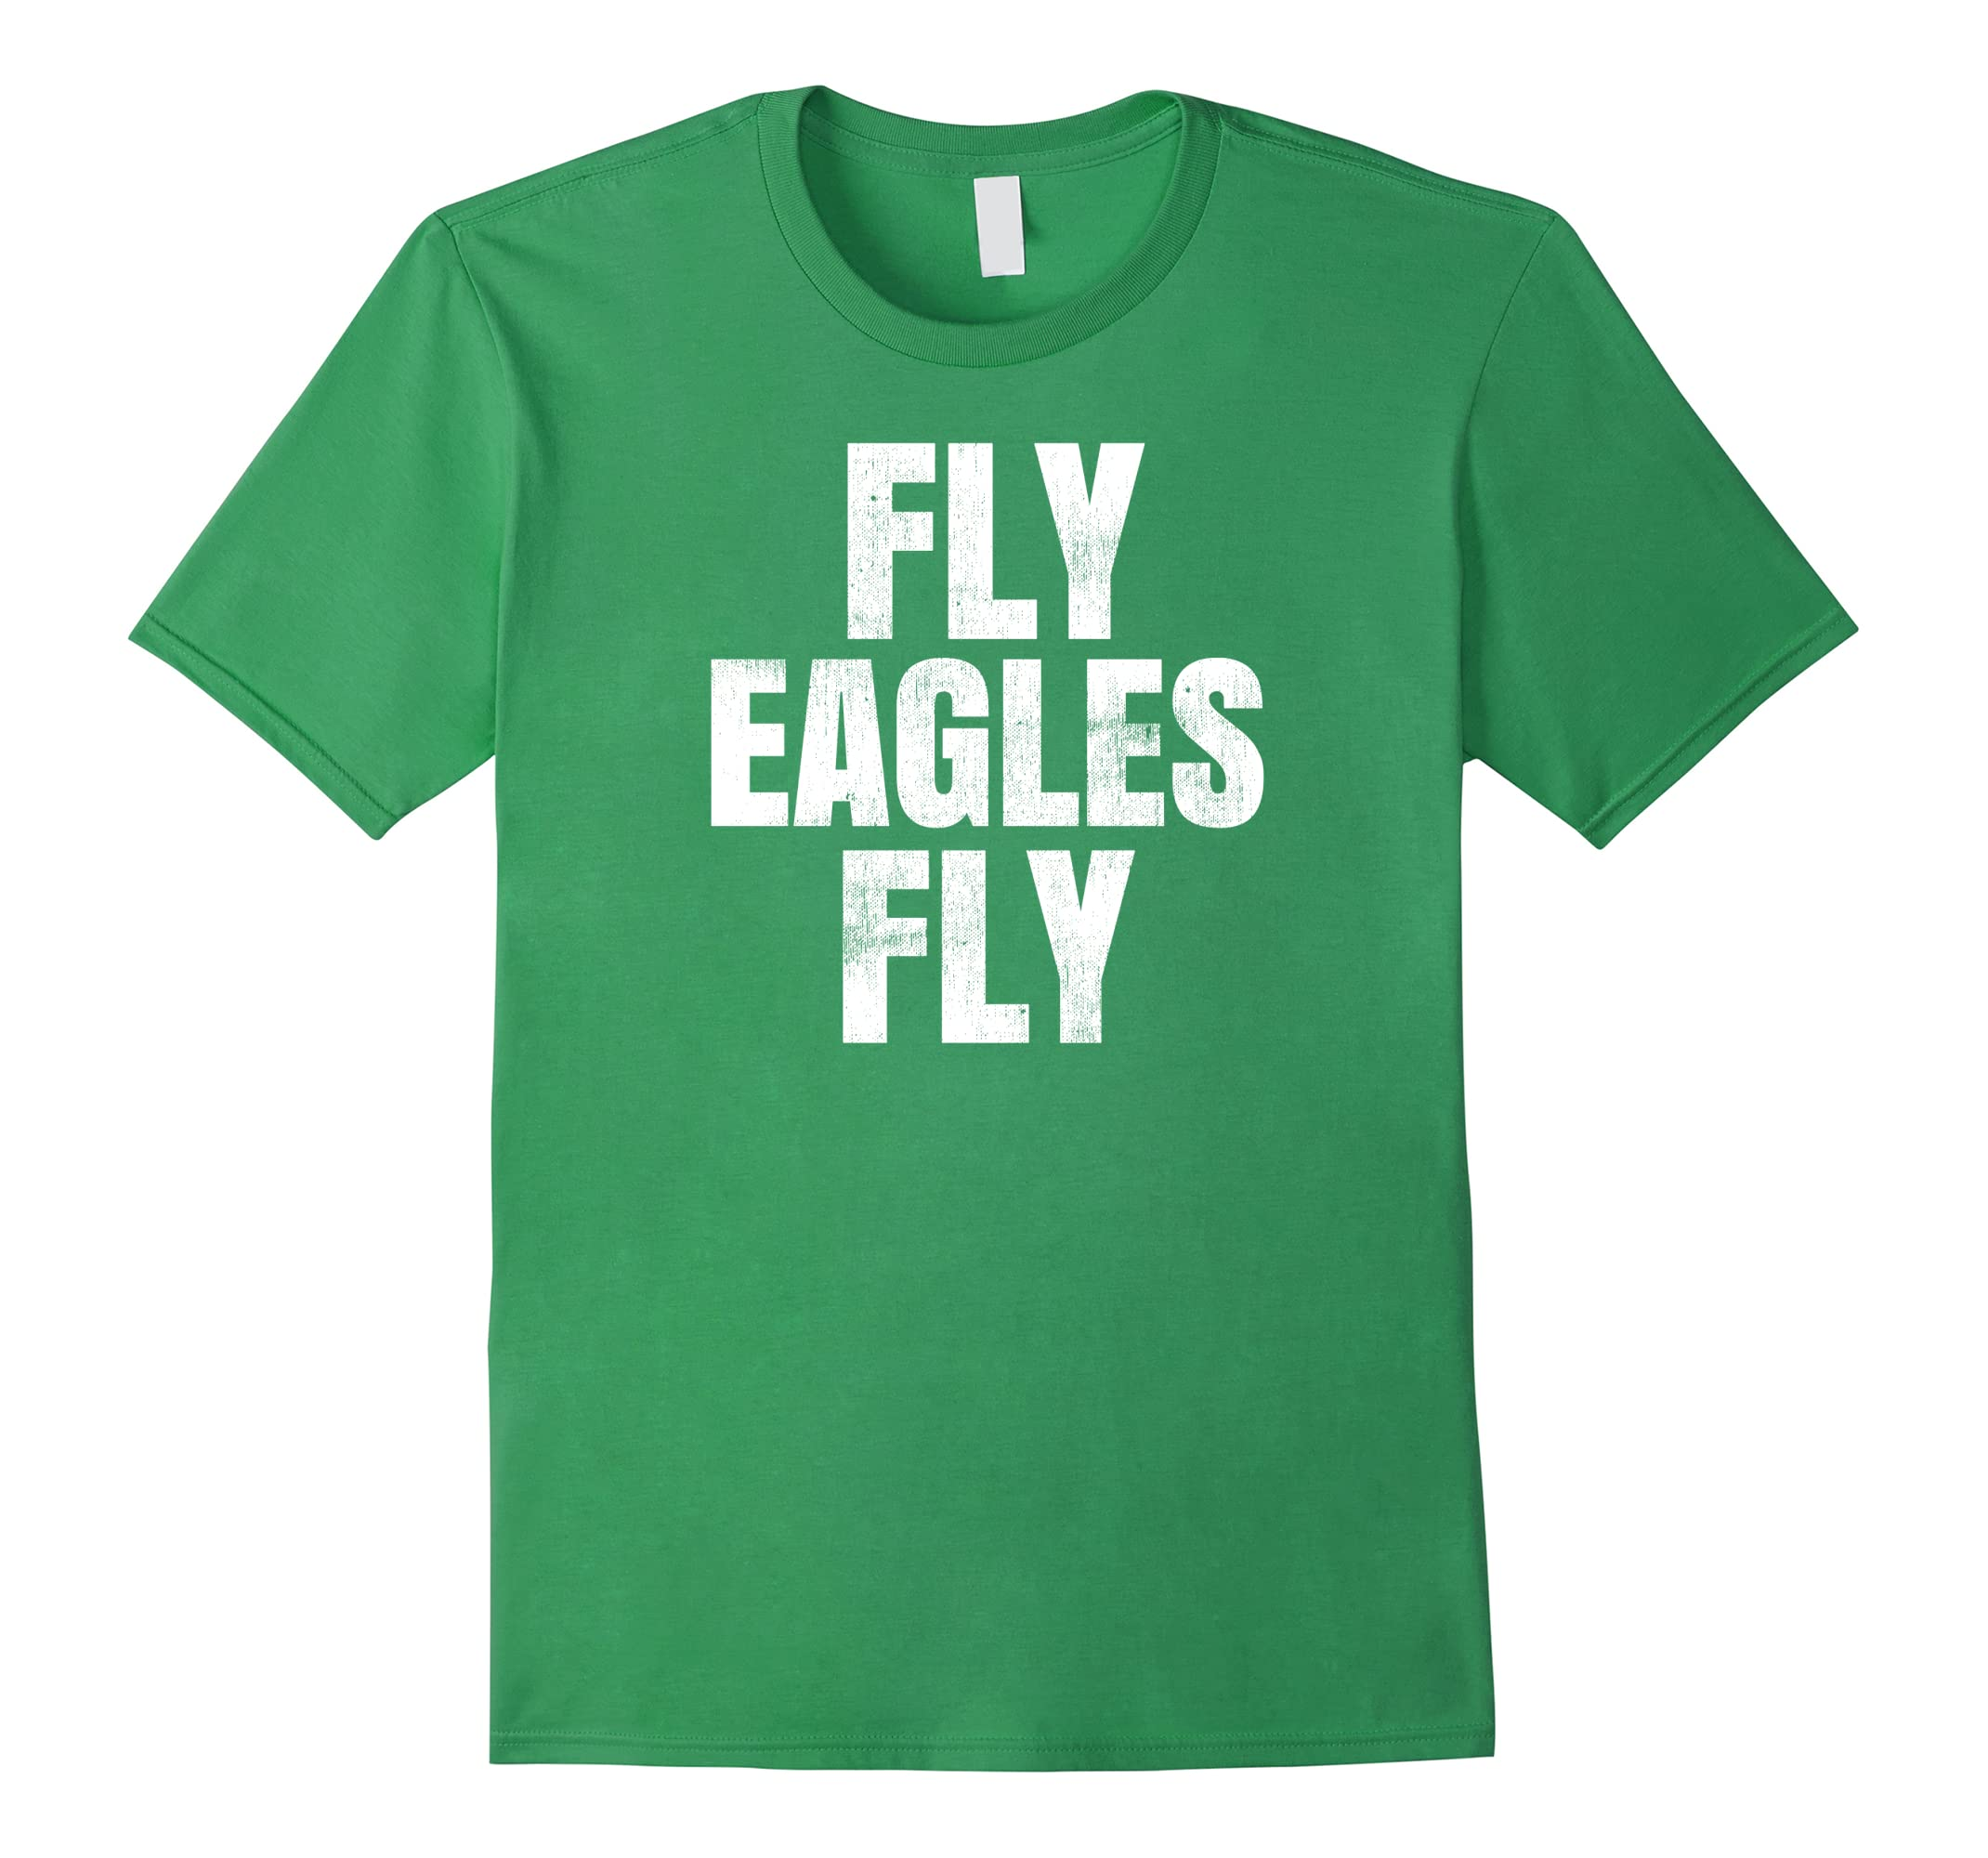 Fly Eagles Fly T Shirt ~ Flying Eagles TShirt Women Men Kids-ah my shirt one gift